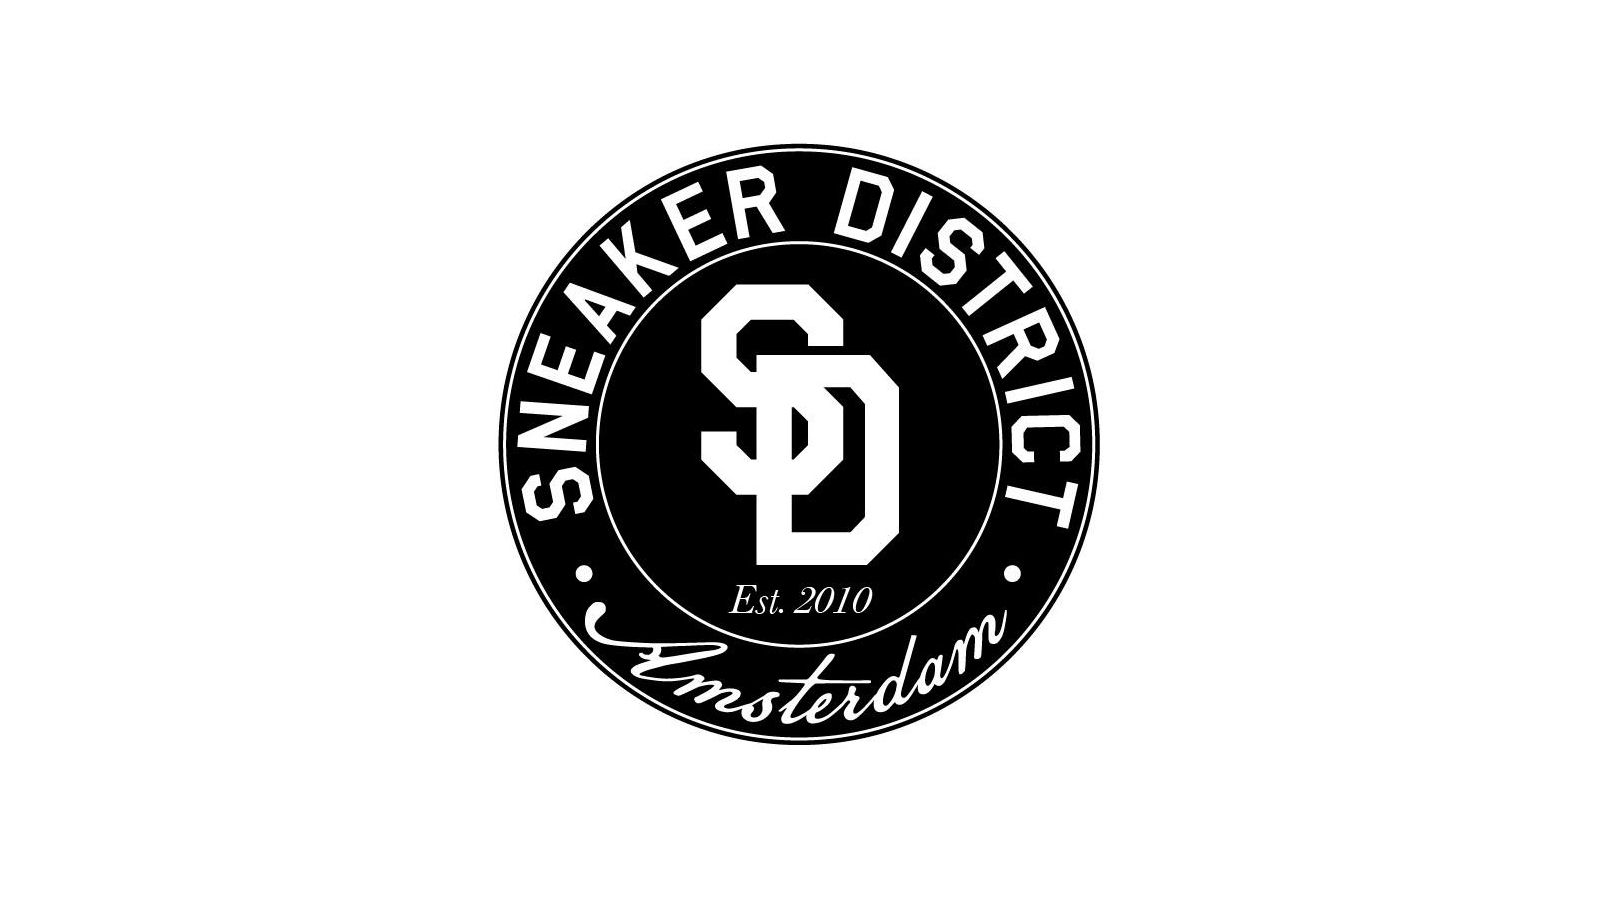 Sneakerdistrict wordt gehost door True